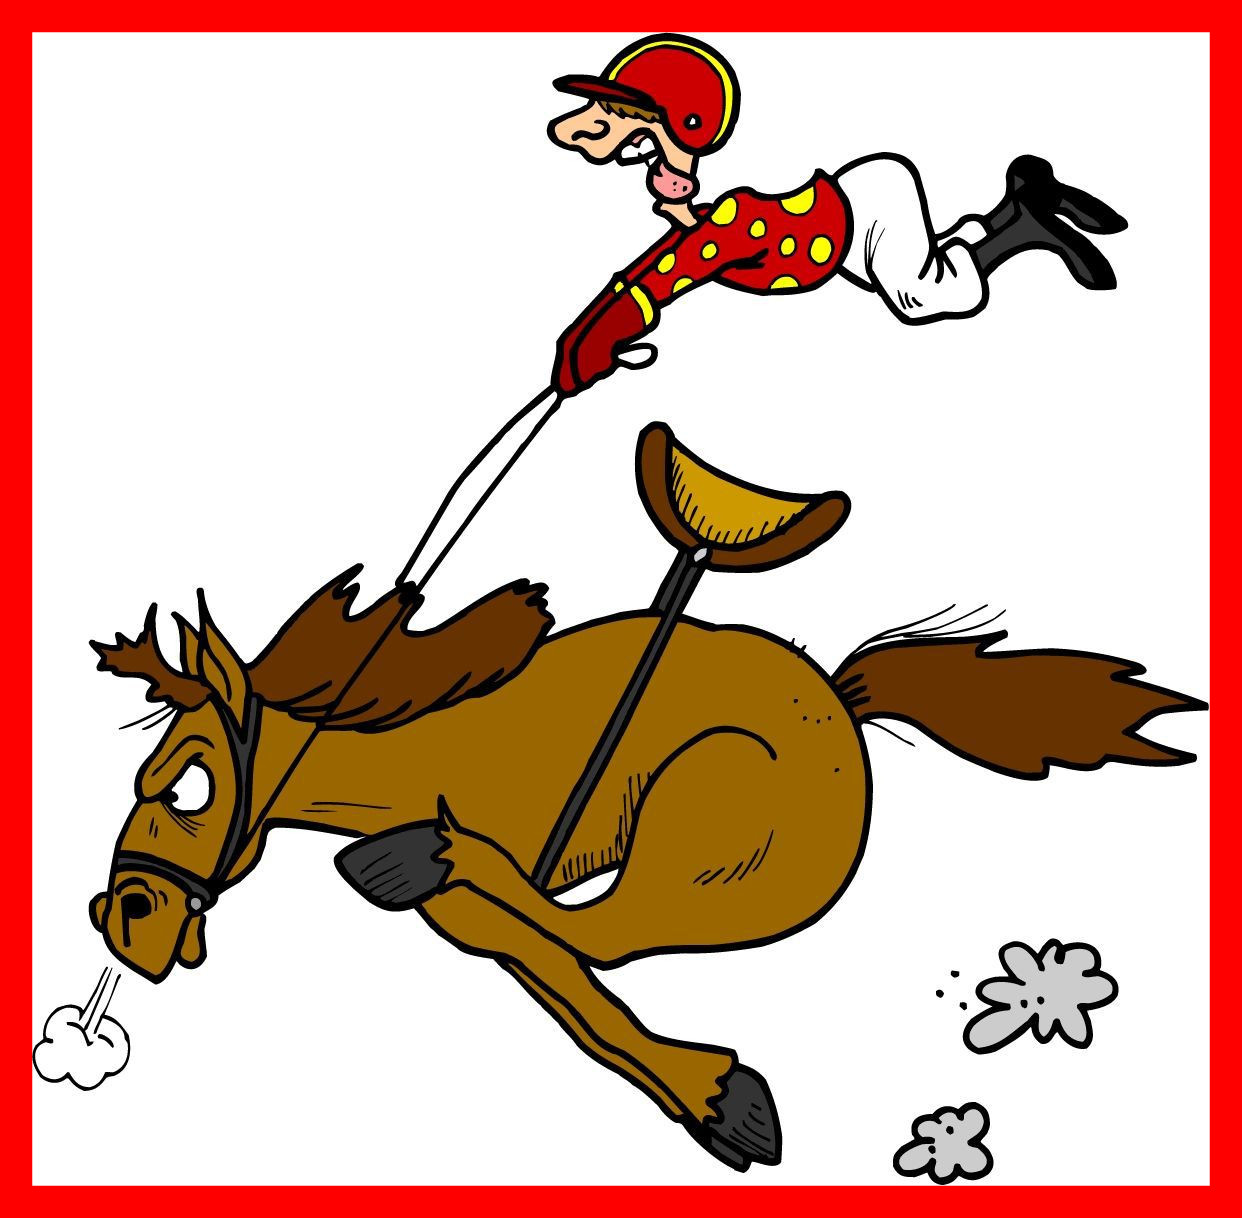 racing clipart at getdrawings com free for personal use racing rh getdrawings com horse racing clipart in ai free horse racing clipart in ai free